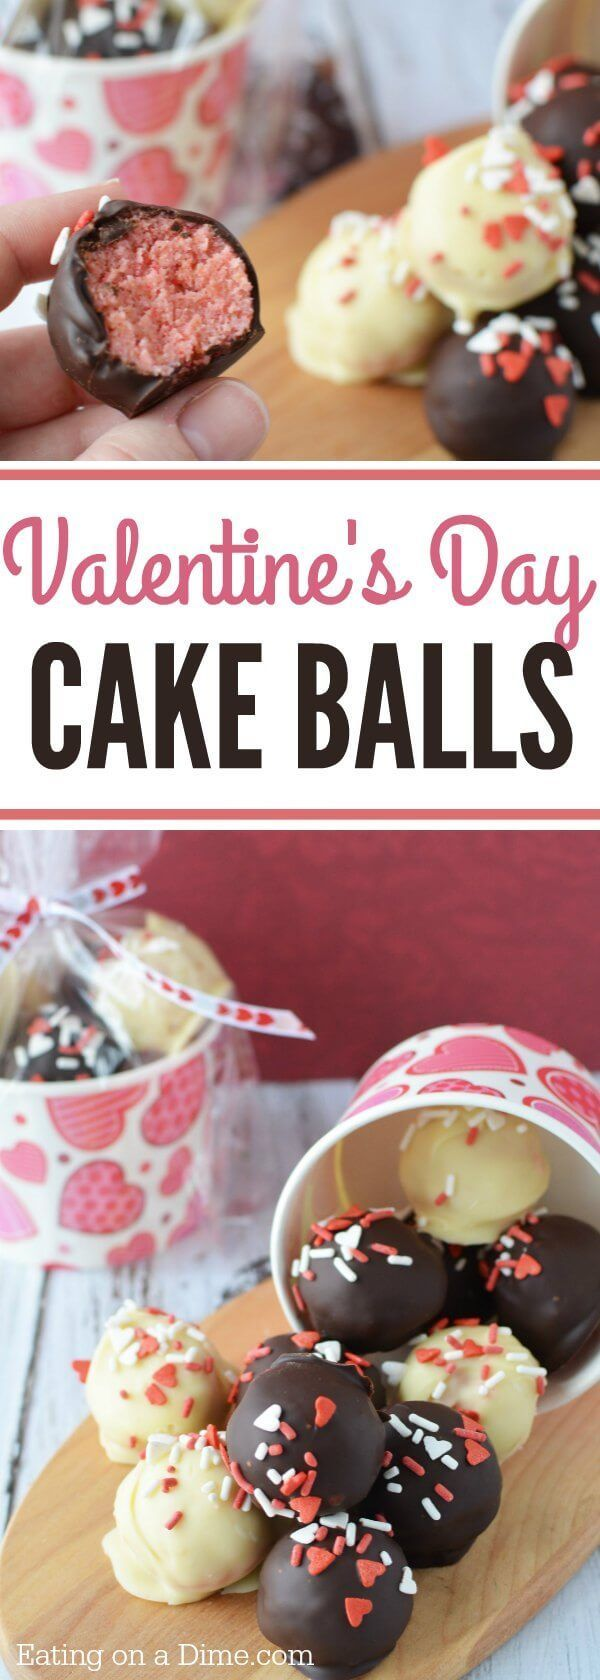 This easy cake ball recipe is perfect for Valentine's Day. You can also try the cake pop recipe. Valentine's Day Cake Balls Recipe is the perfect treat!